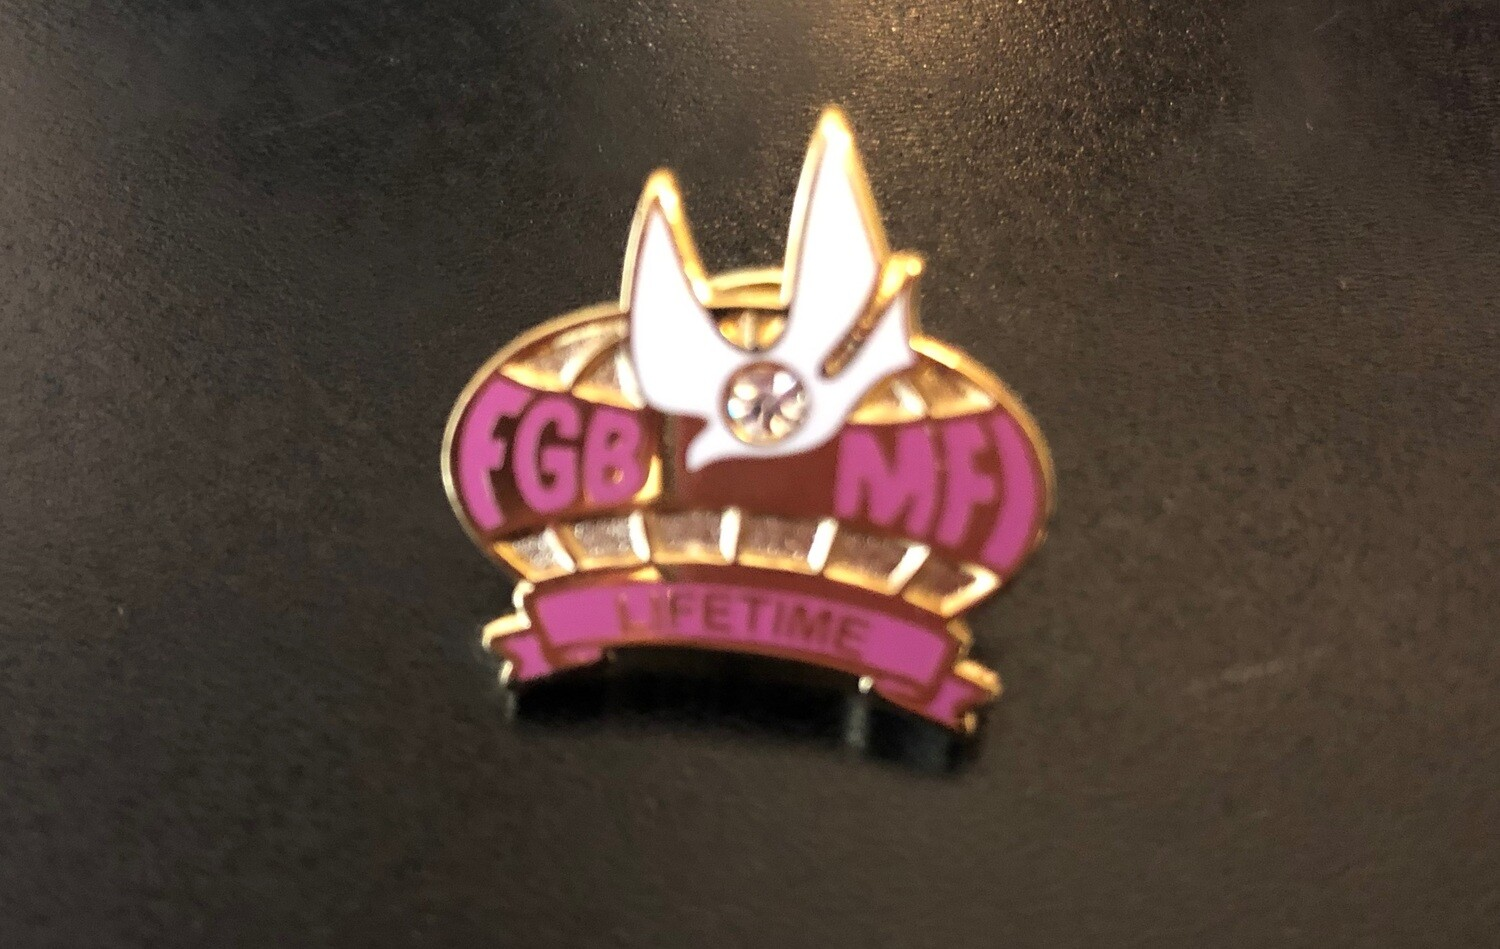 Ladies Lifetime Member Lapel Pin (Available in USA ONLY)